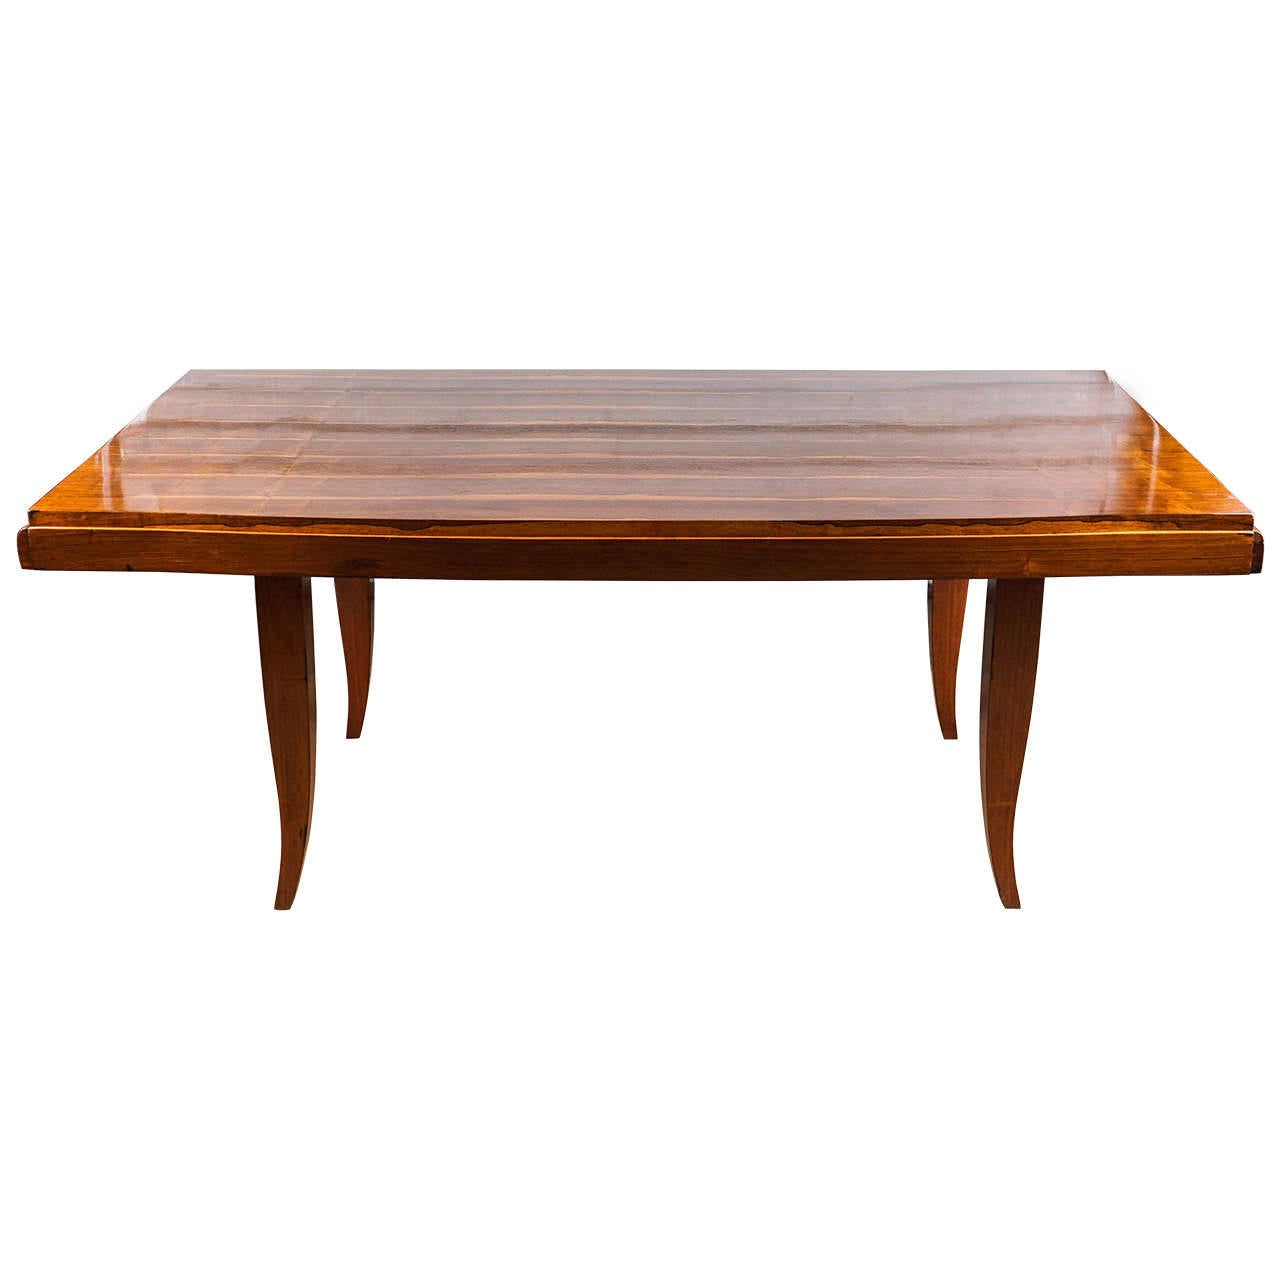 French art deco inlaid rosewood dining room table at 1stdibs - Art deco dining room table ...